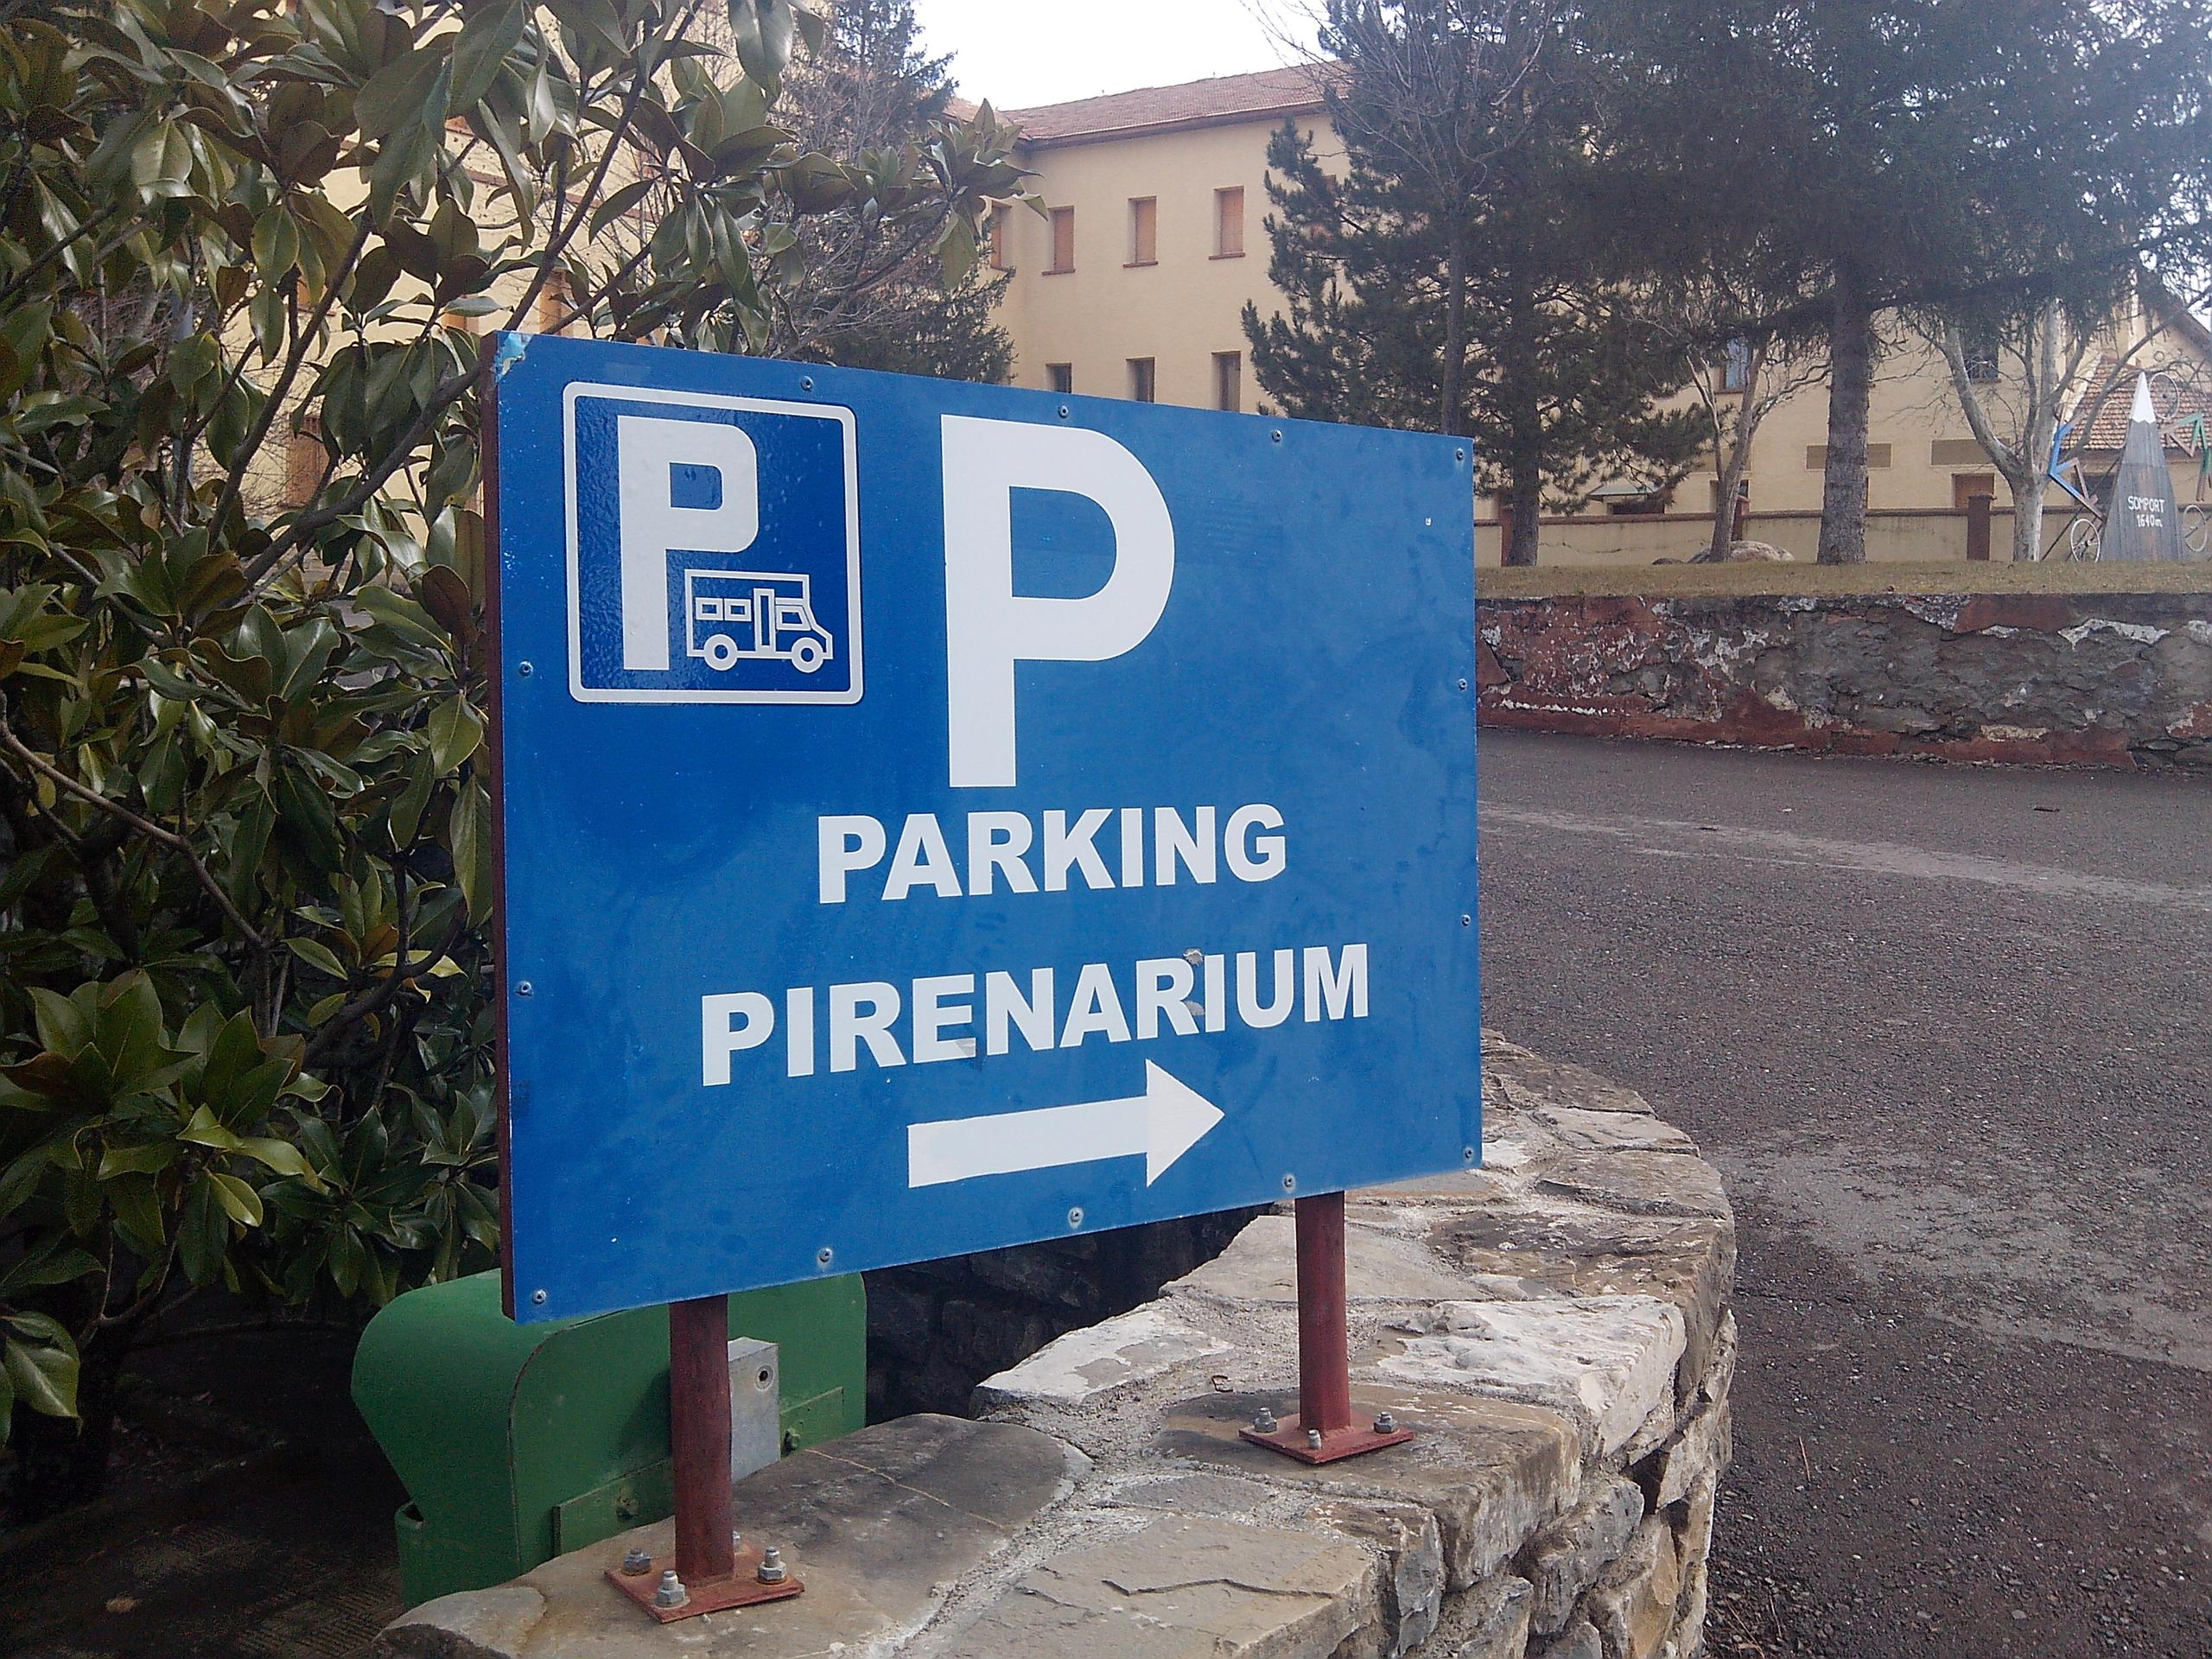 Parking Pirenarium